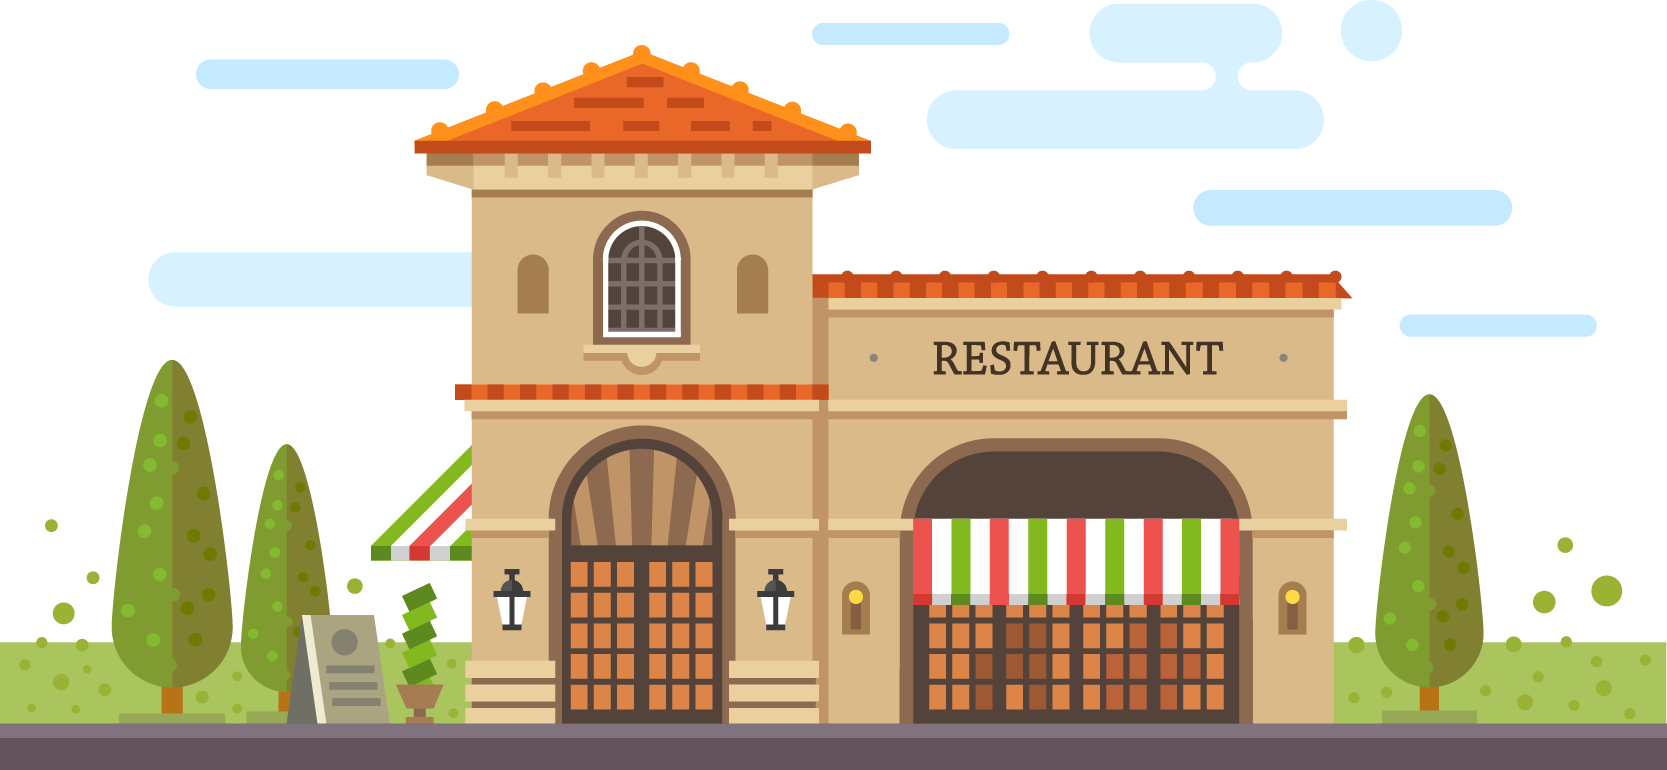 picture royalty free download Cafe Restaurant Building Pizza